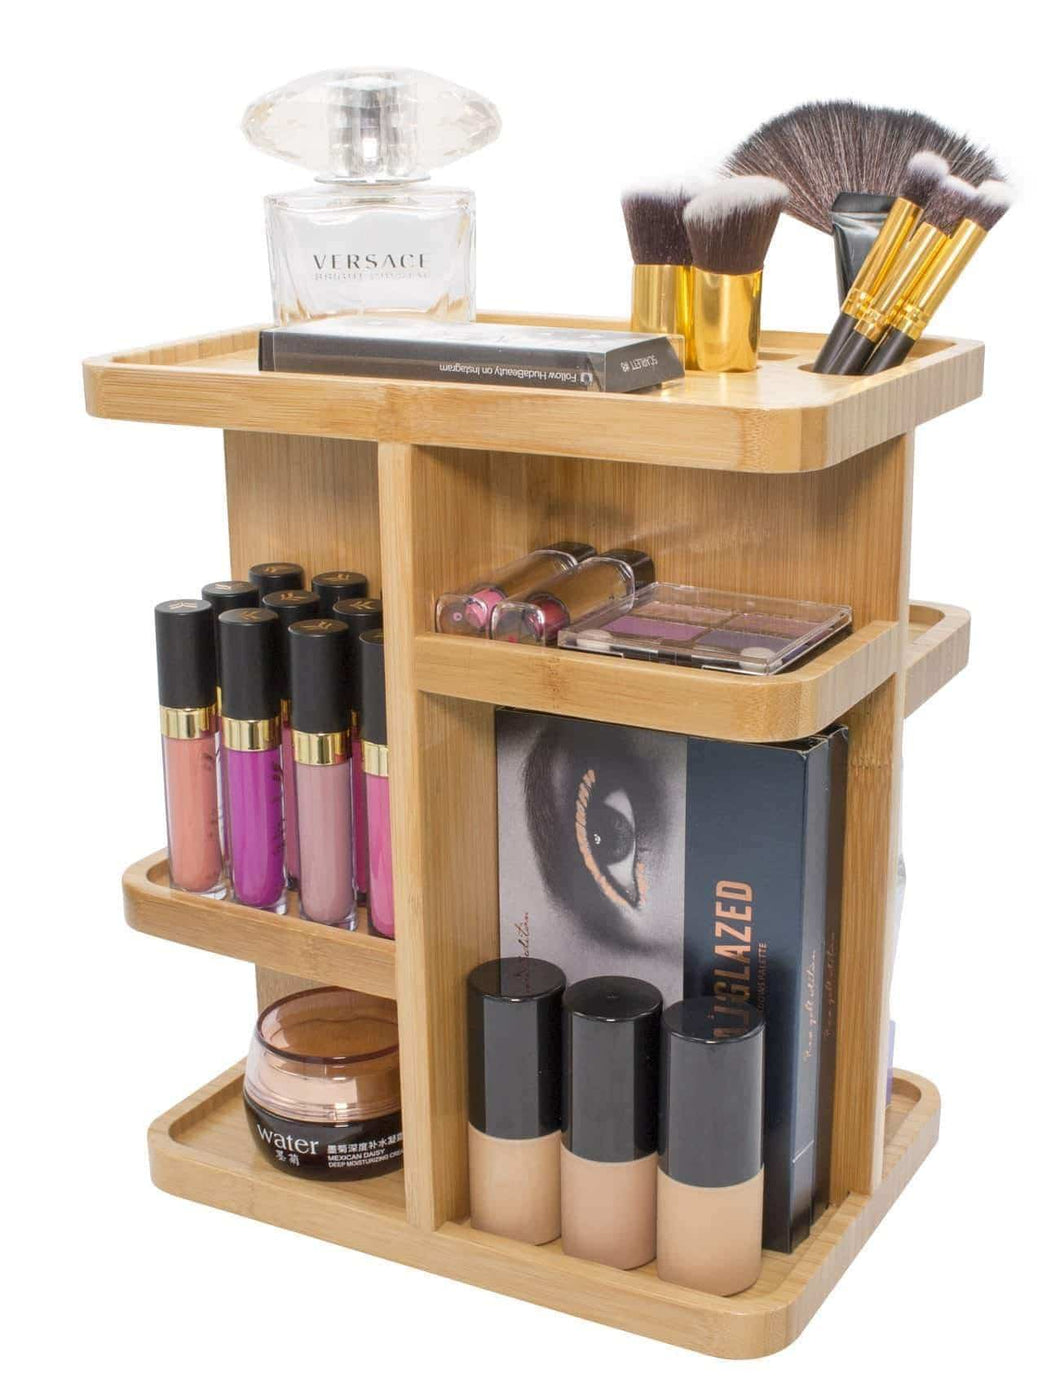 Amazon sorbus 360 bamboo cosmetic organizer multi function storage carousel for makeup toiletries and more for vanity desk bathroom bedroom closet kitchen